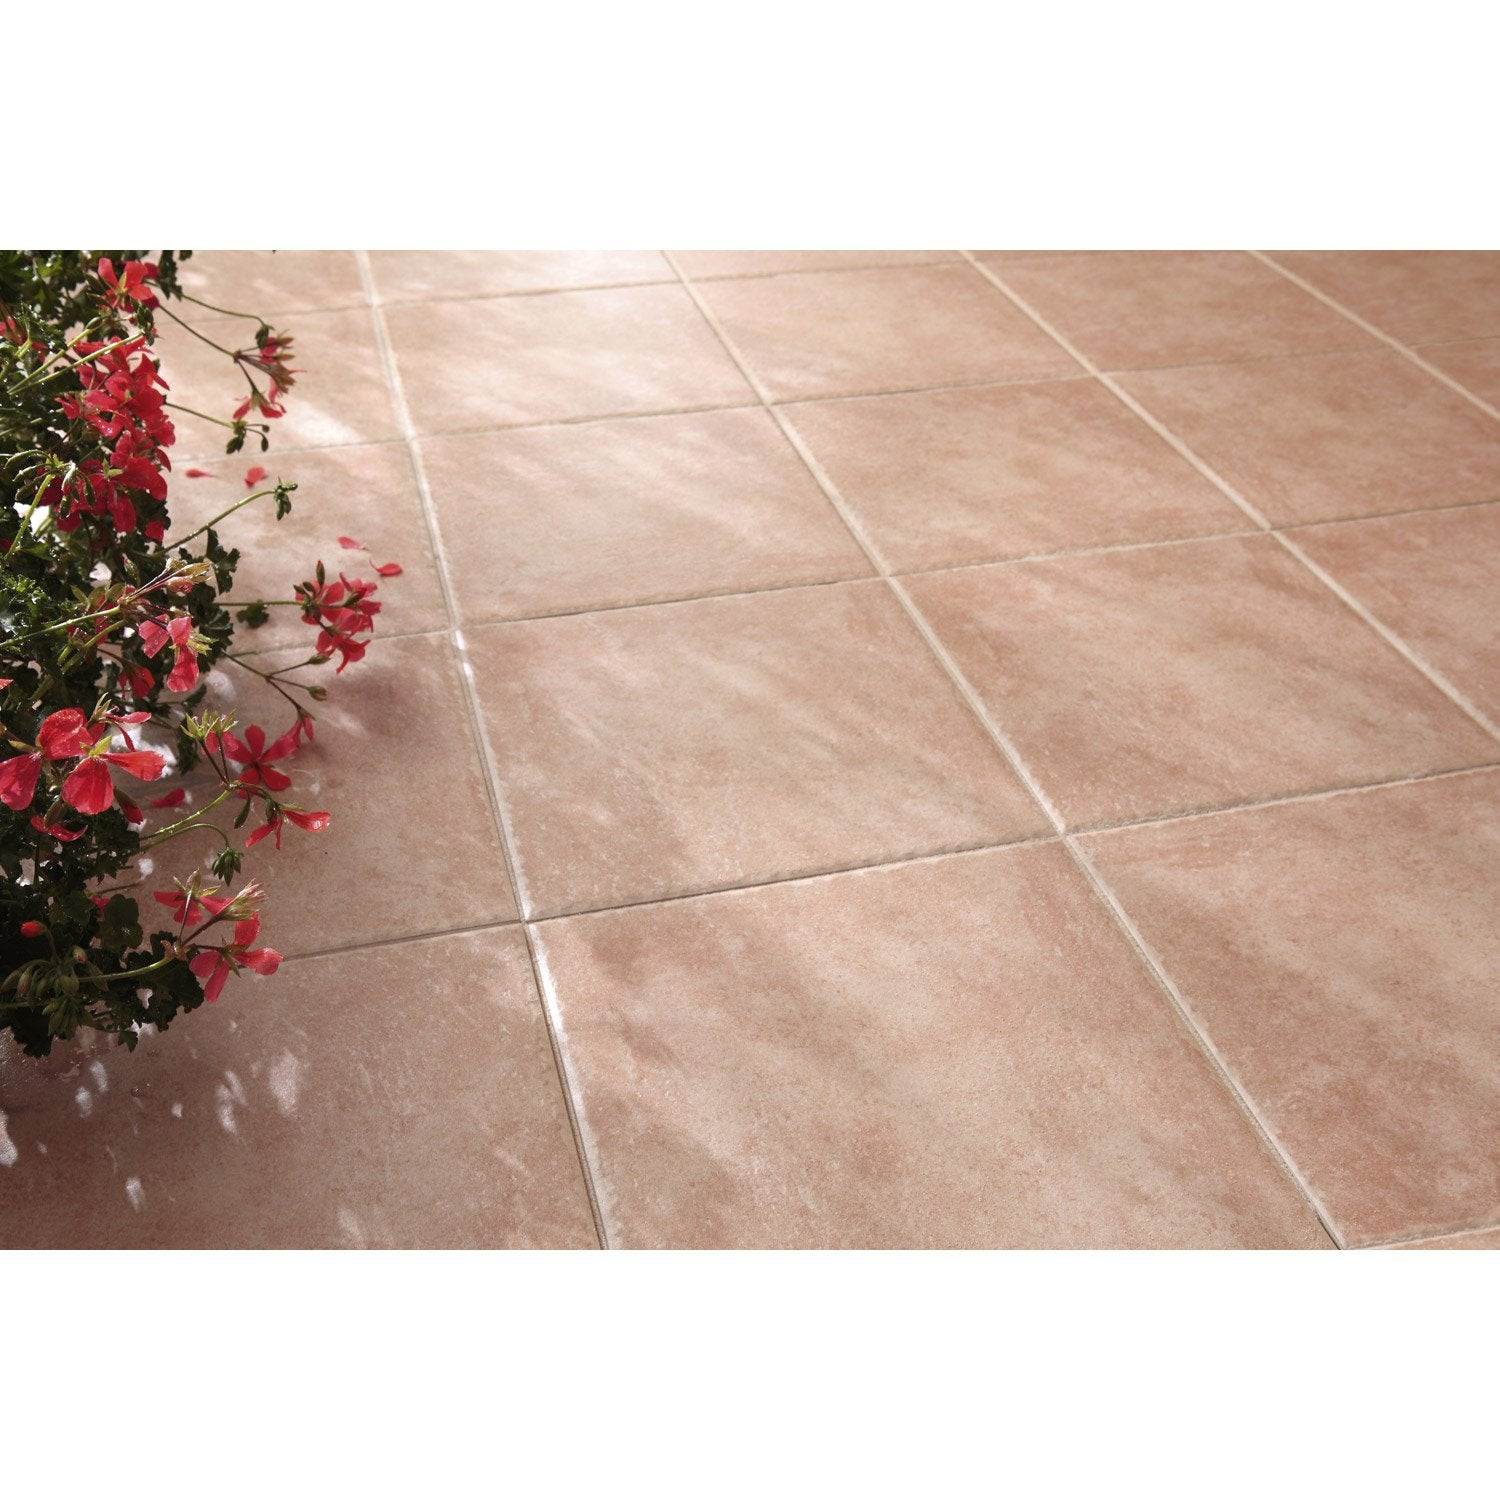 Carrelage sol rose effet pierre Michigan l.34 x L.34 cm  Leroy Merlin